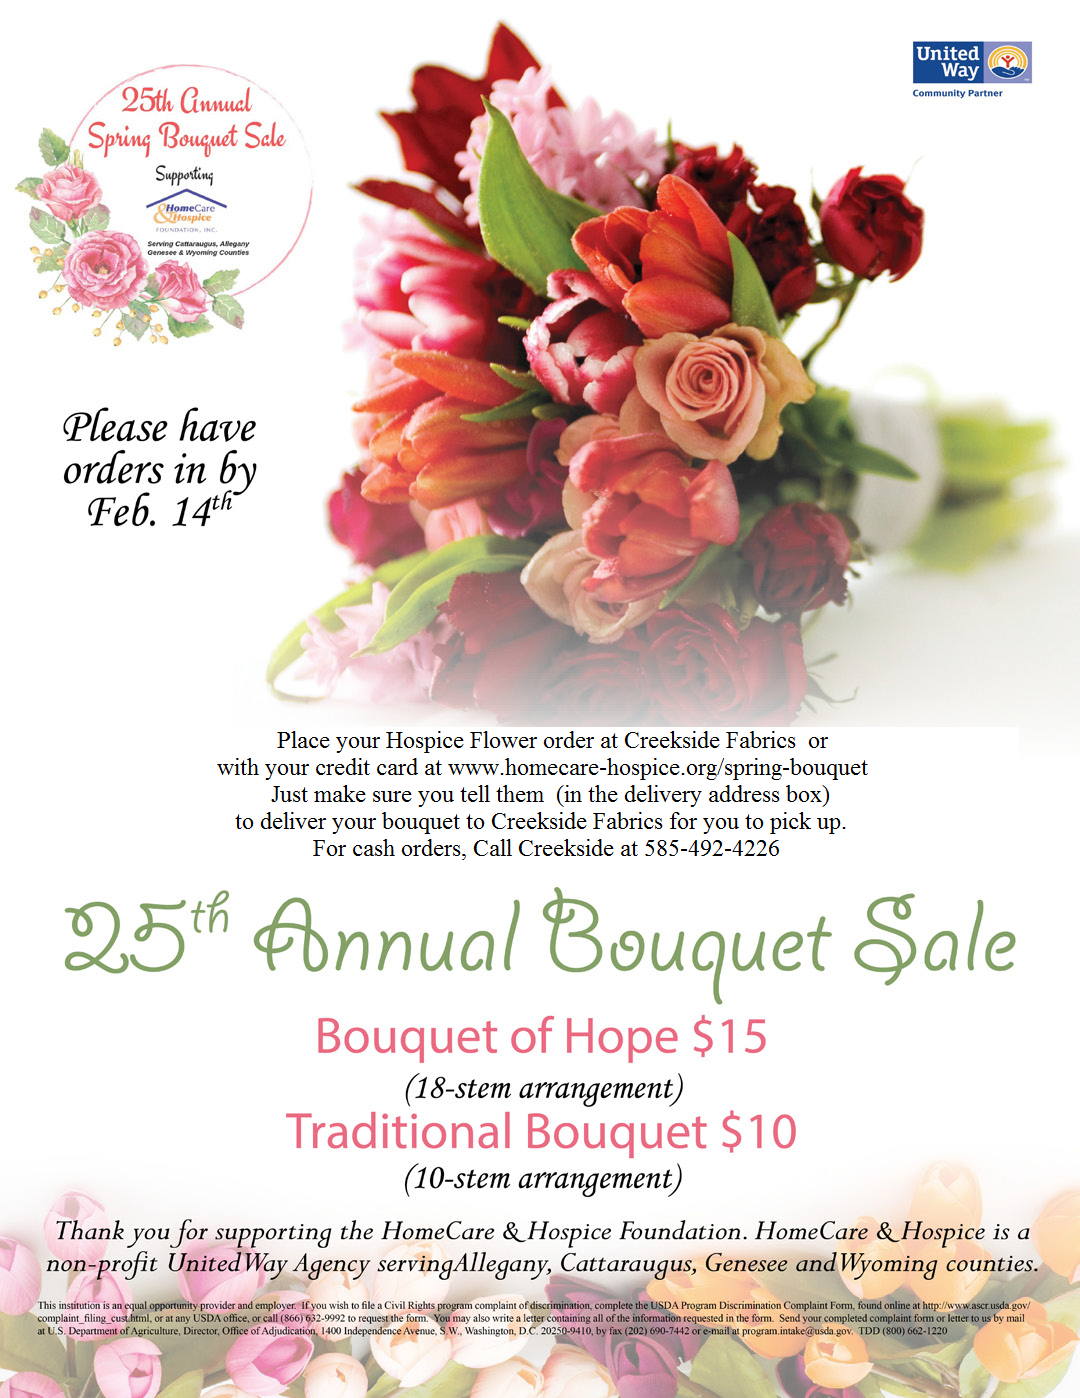 hospice flower bouquets 2019 order info at creekside fabrics arcade, ny